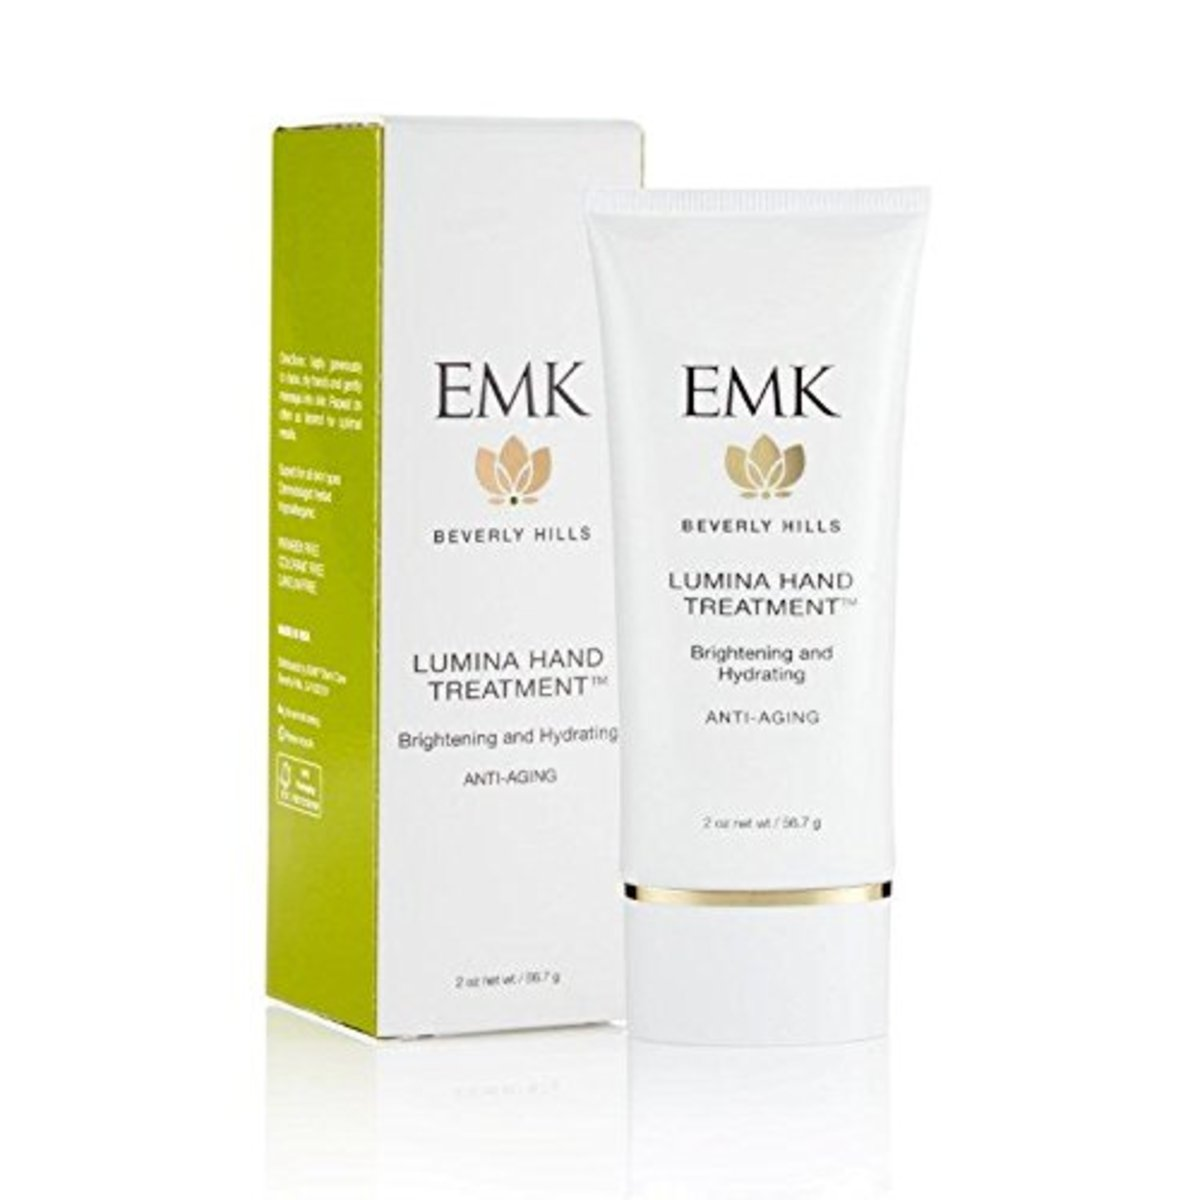 EMK Lumina Hand Treatment